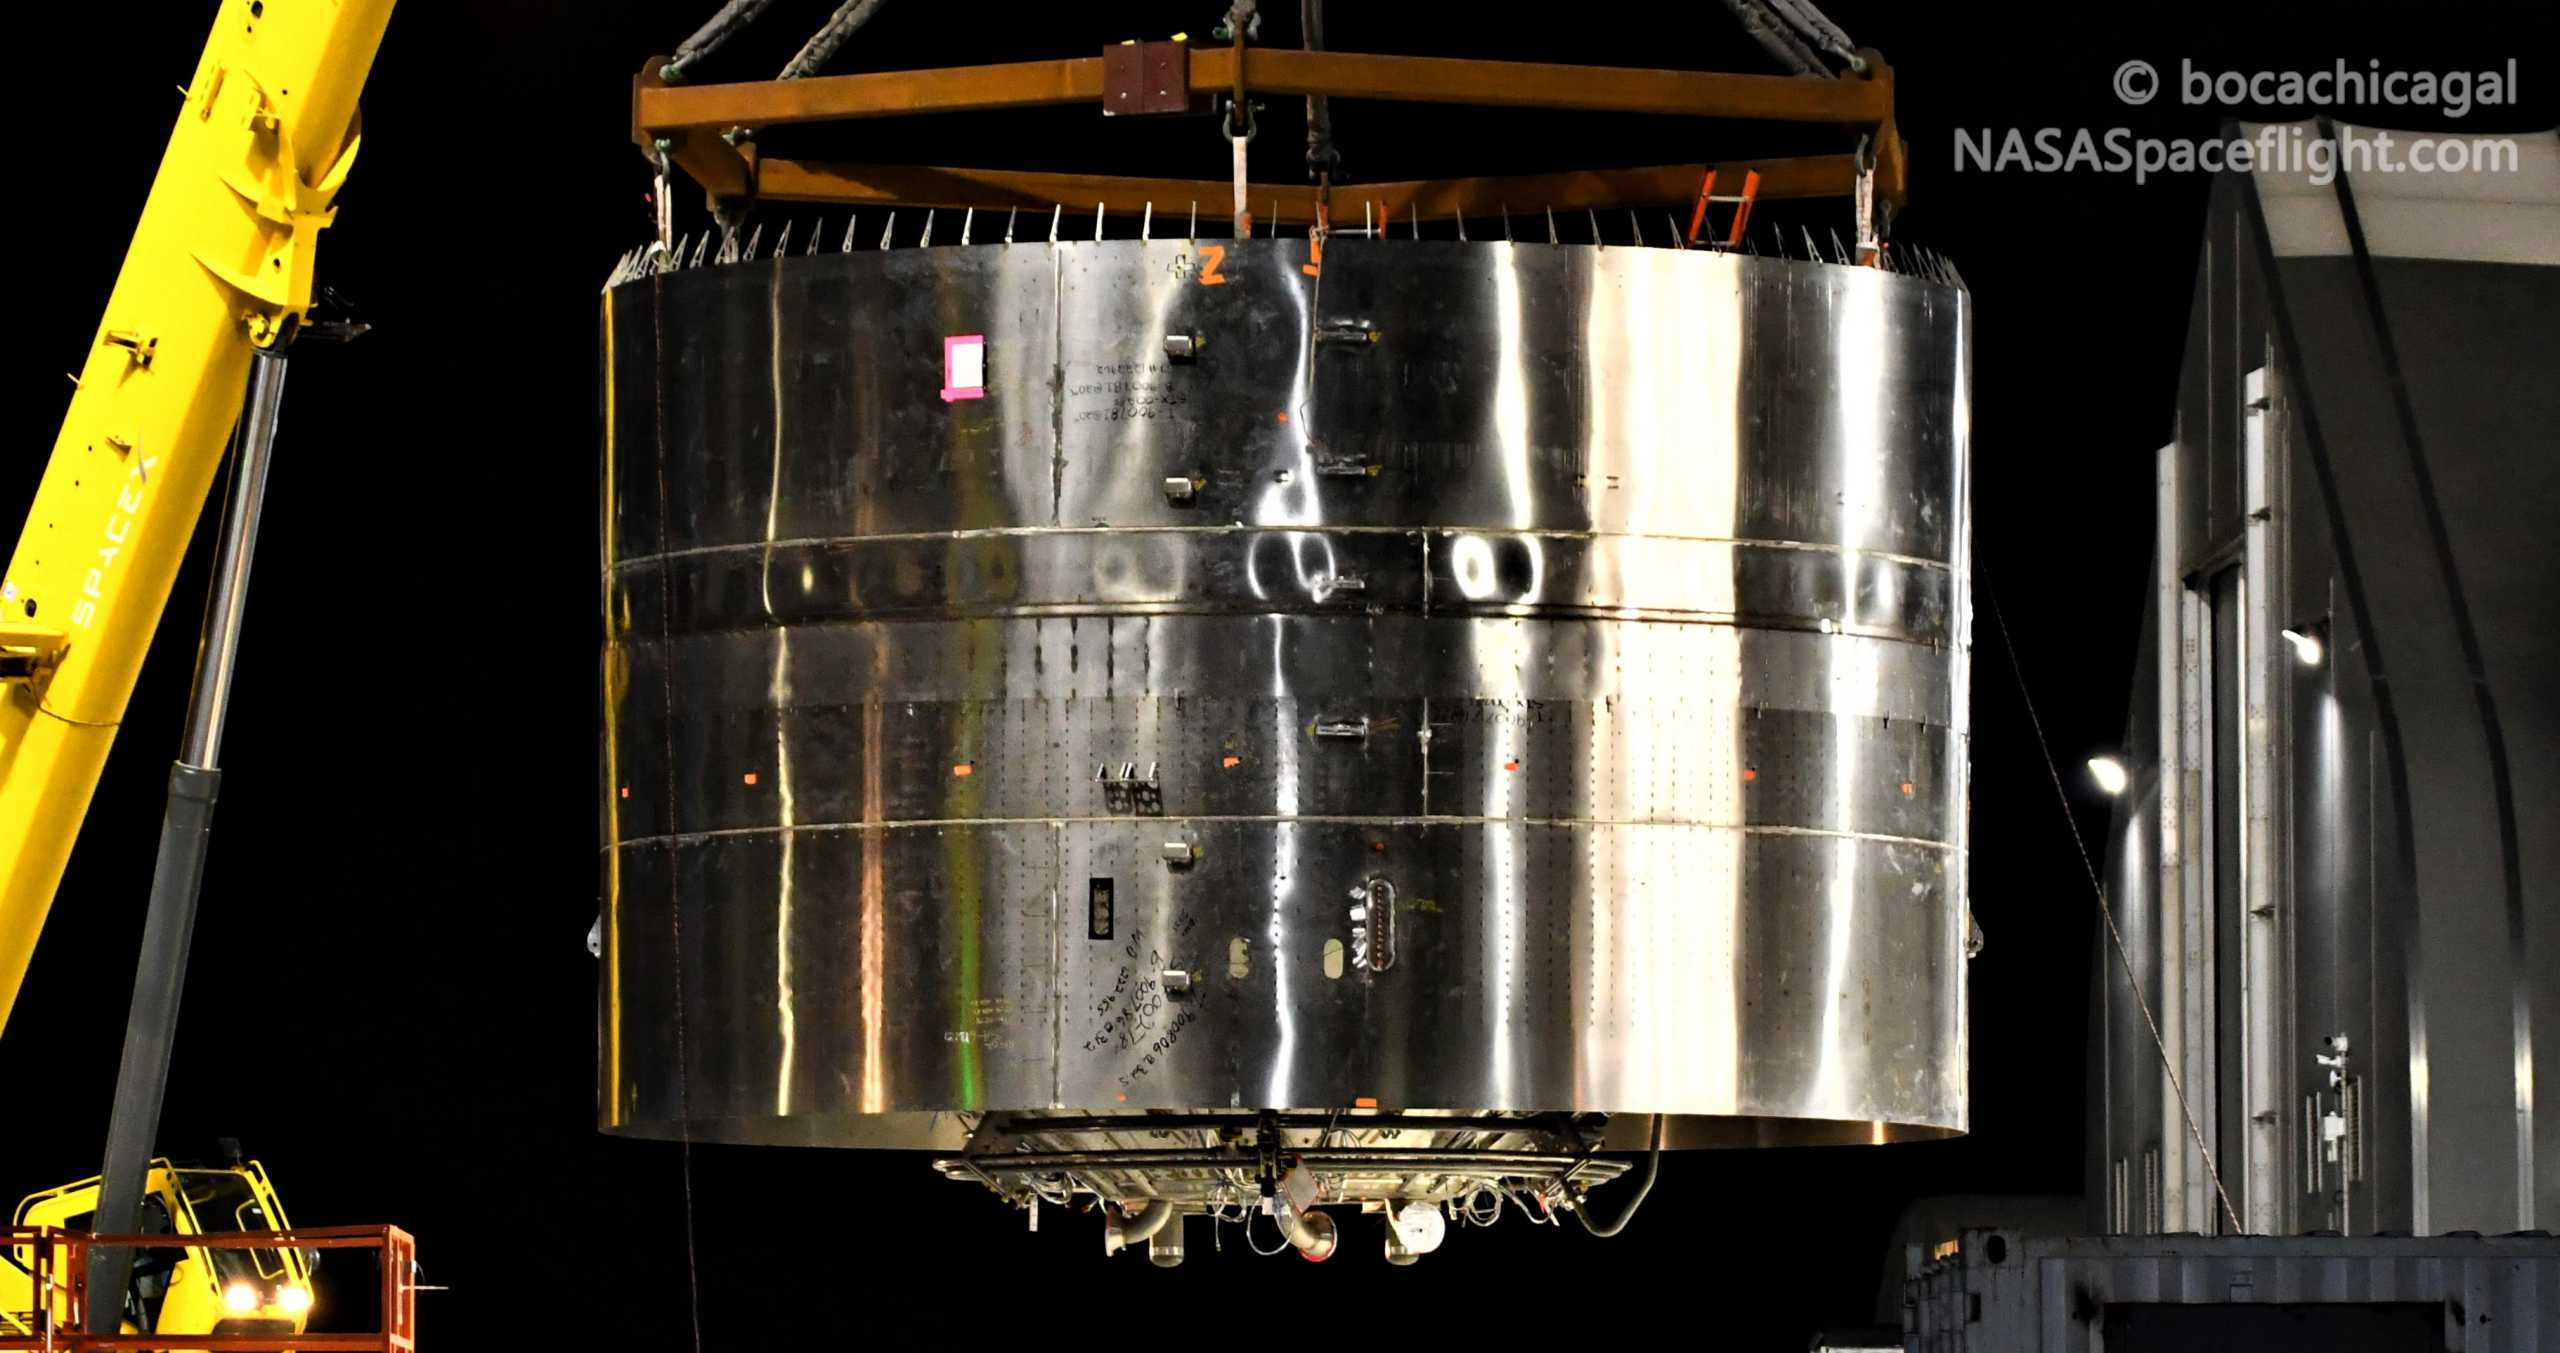 Starship Boca Chica 081920 (NASASpaceflight – bocachicagal) SN8 engine section skirt stack 3 crop (c)